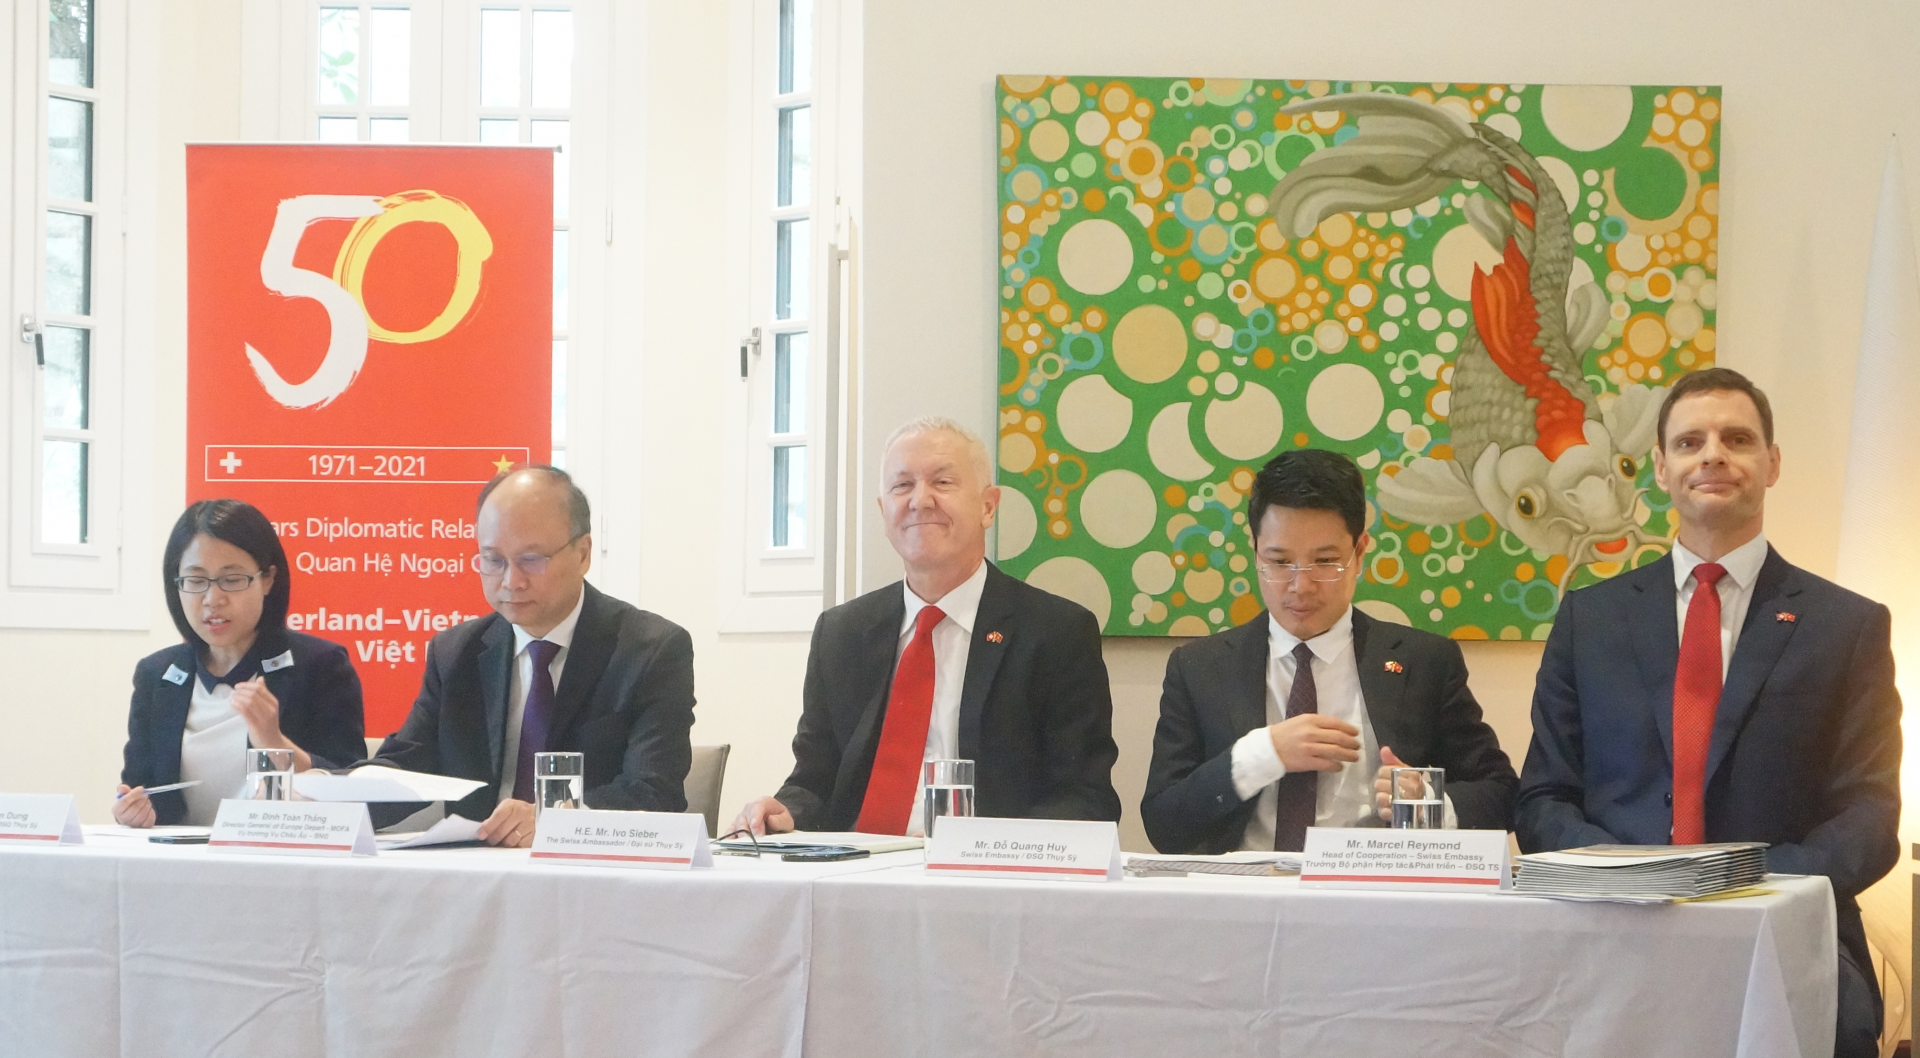 Commemorations to celebrate the 50th anniversary of Swiss-Vietnamese Diplomatic Relations in 2021 launched